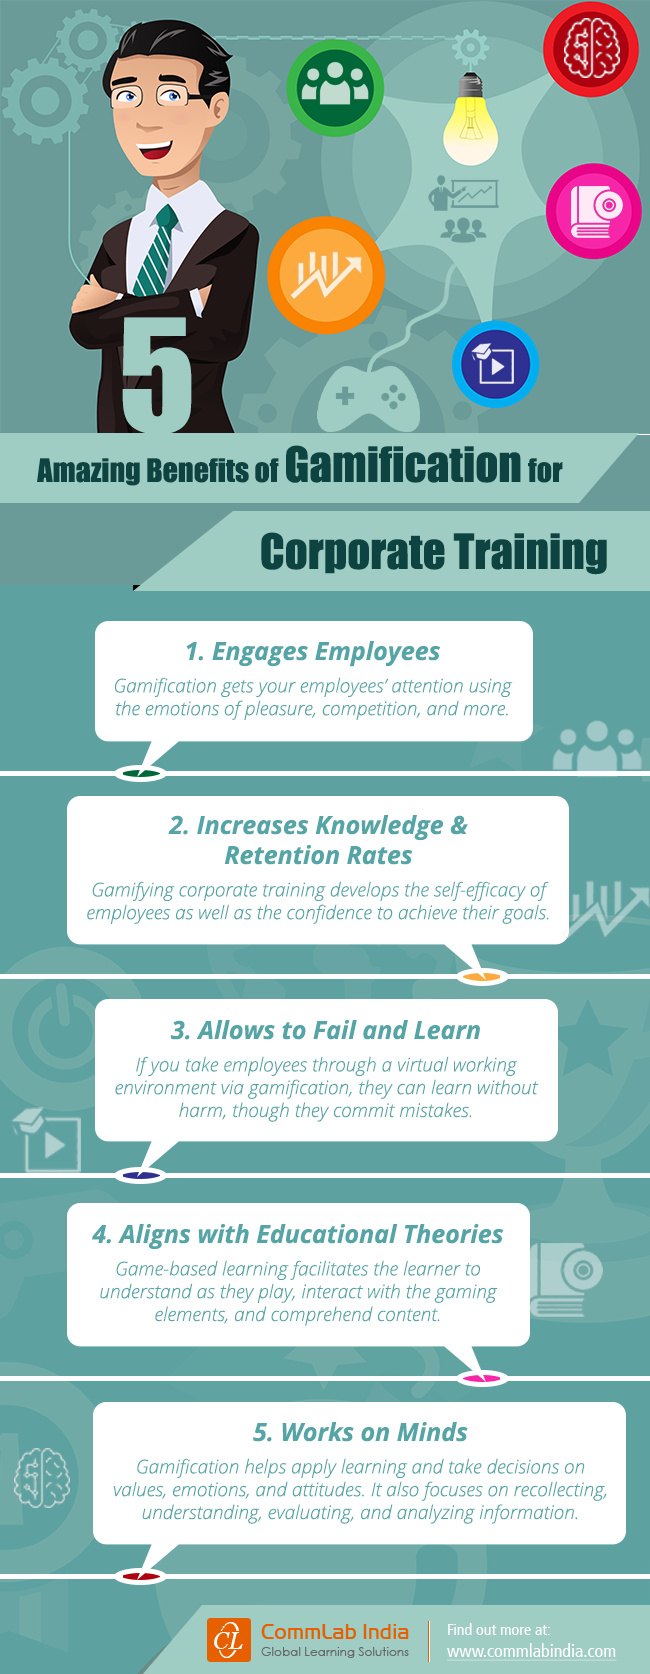 5 Amazing Benefits of Gamification for Corporate Training [Infographic]